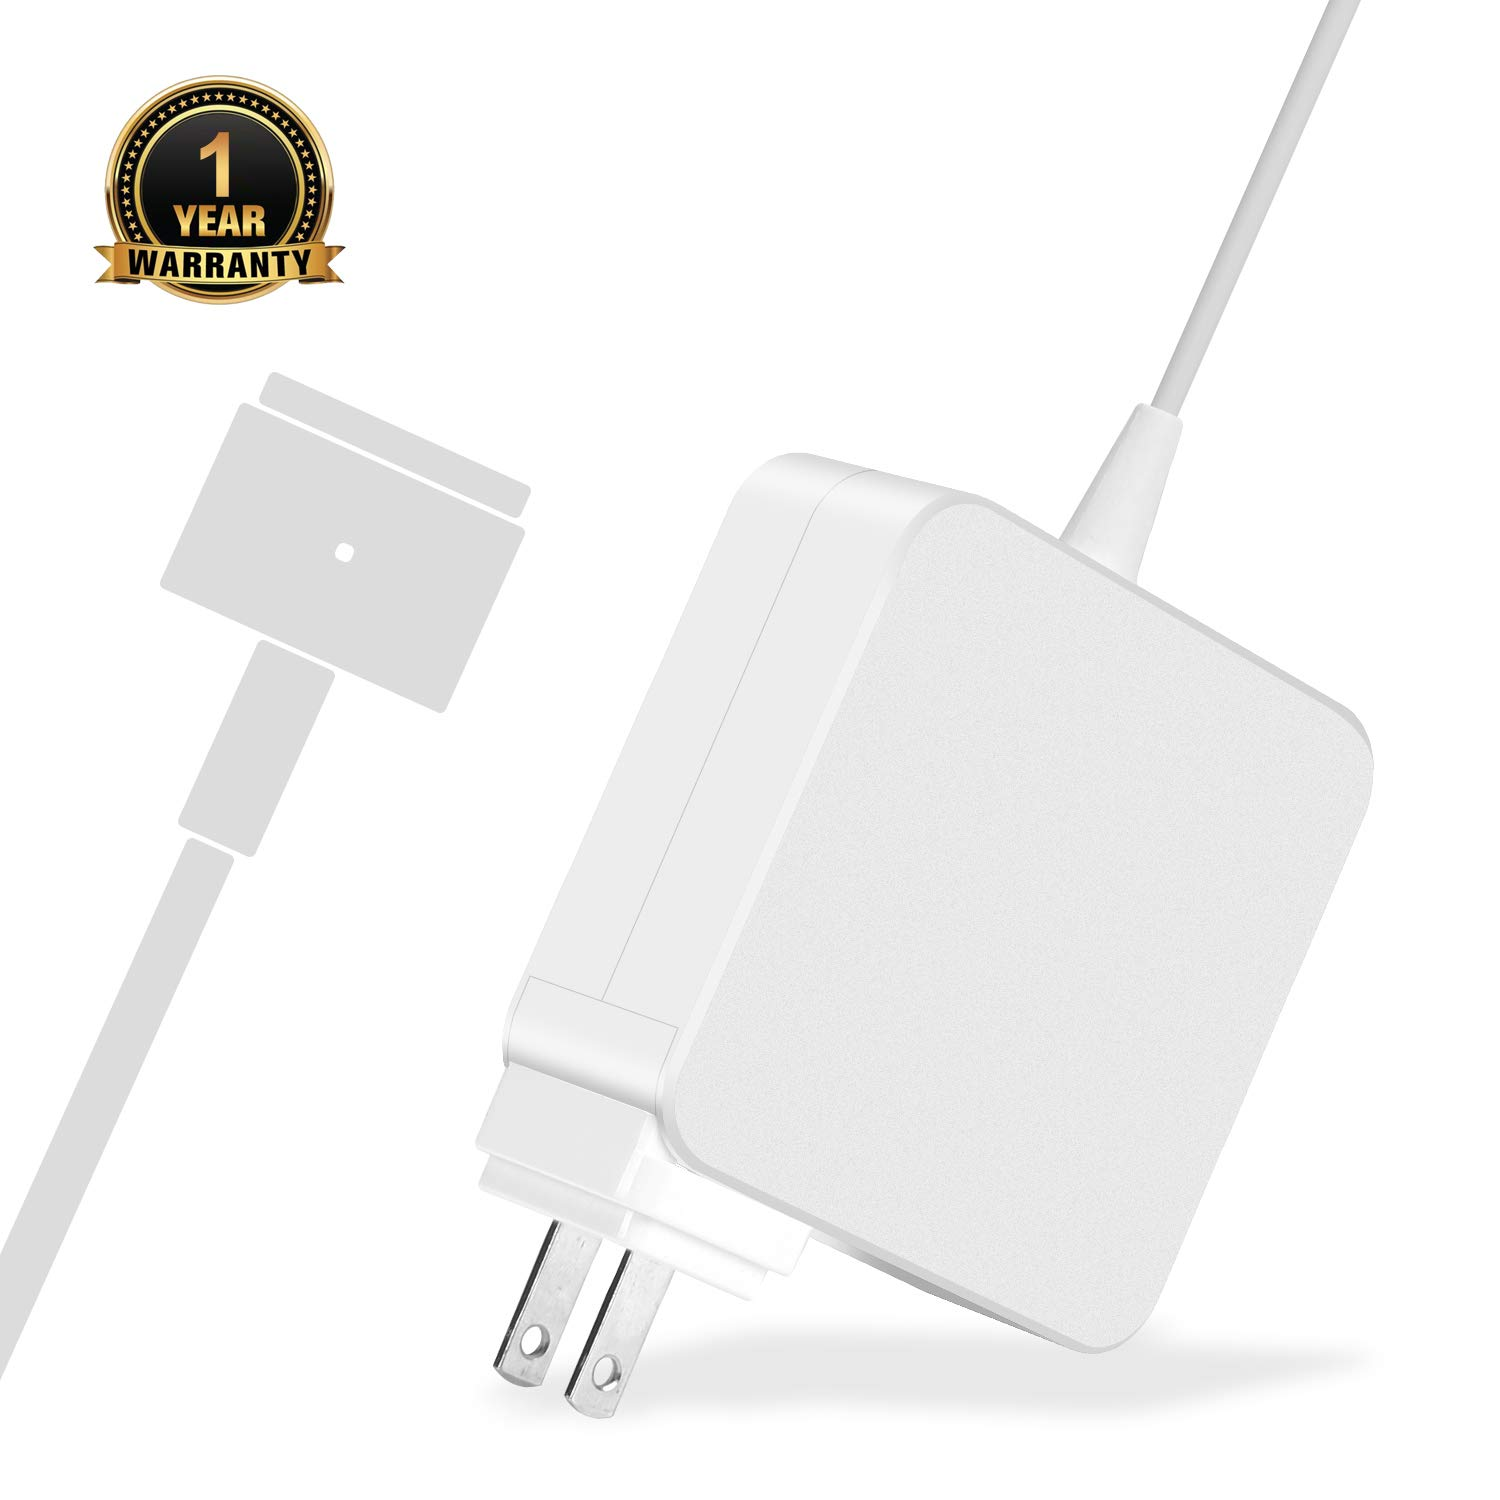 Mac Book Pro Charger, AC 60w Magsafe 2 T-Tip Power Adapter Charger Replacement for MacBook Pro Air 11-inch and 13 inch A1425 A1435 A1465 A1502 (Made After Late 2012)